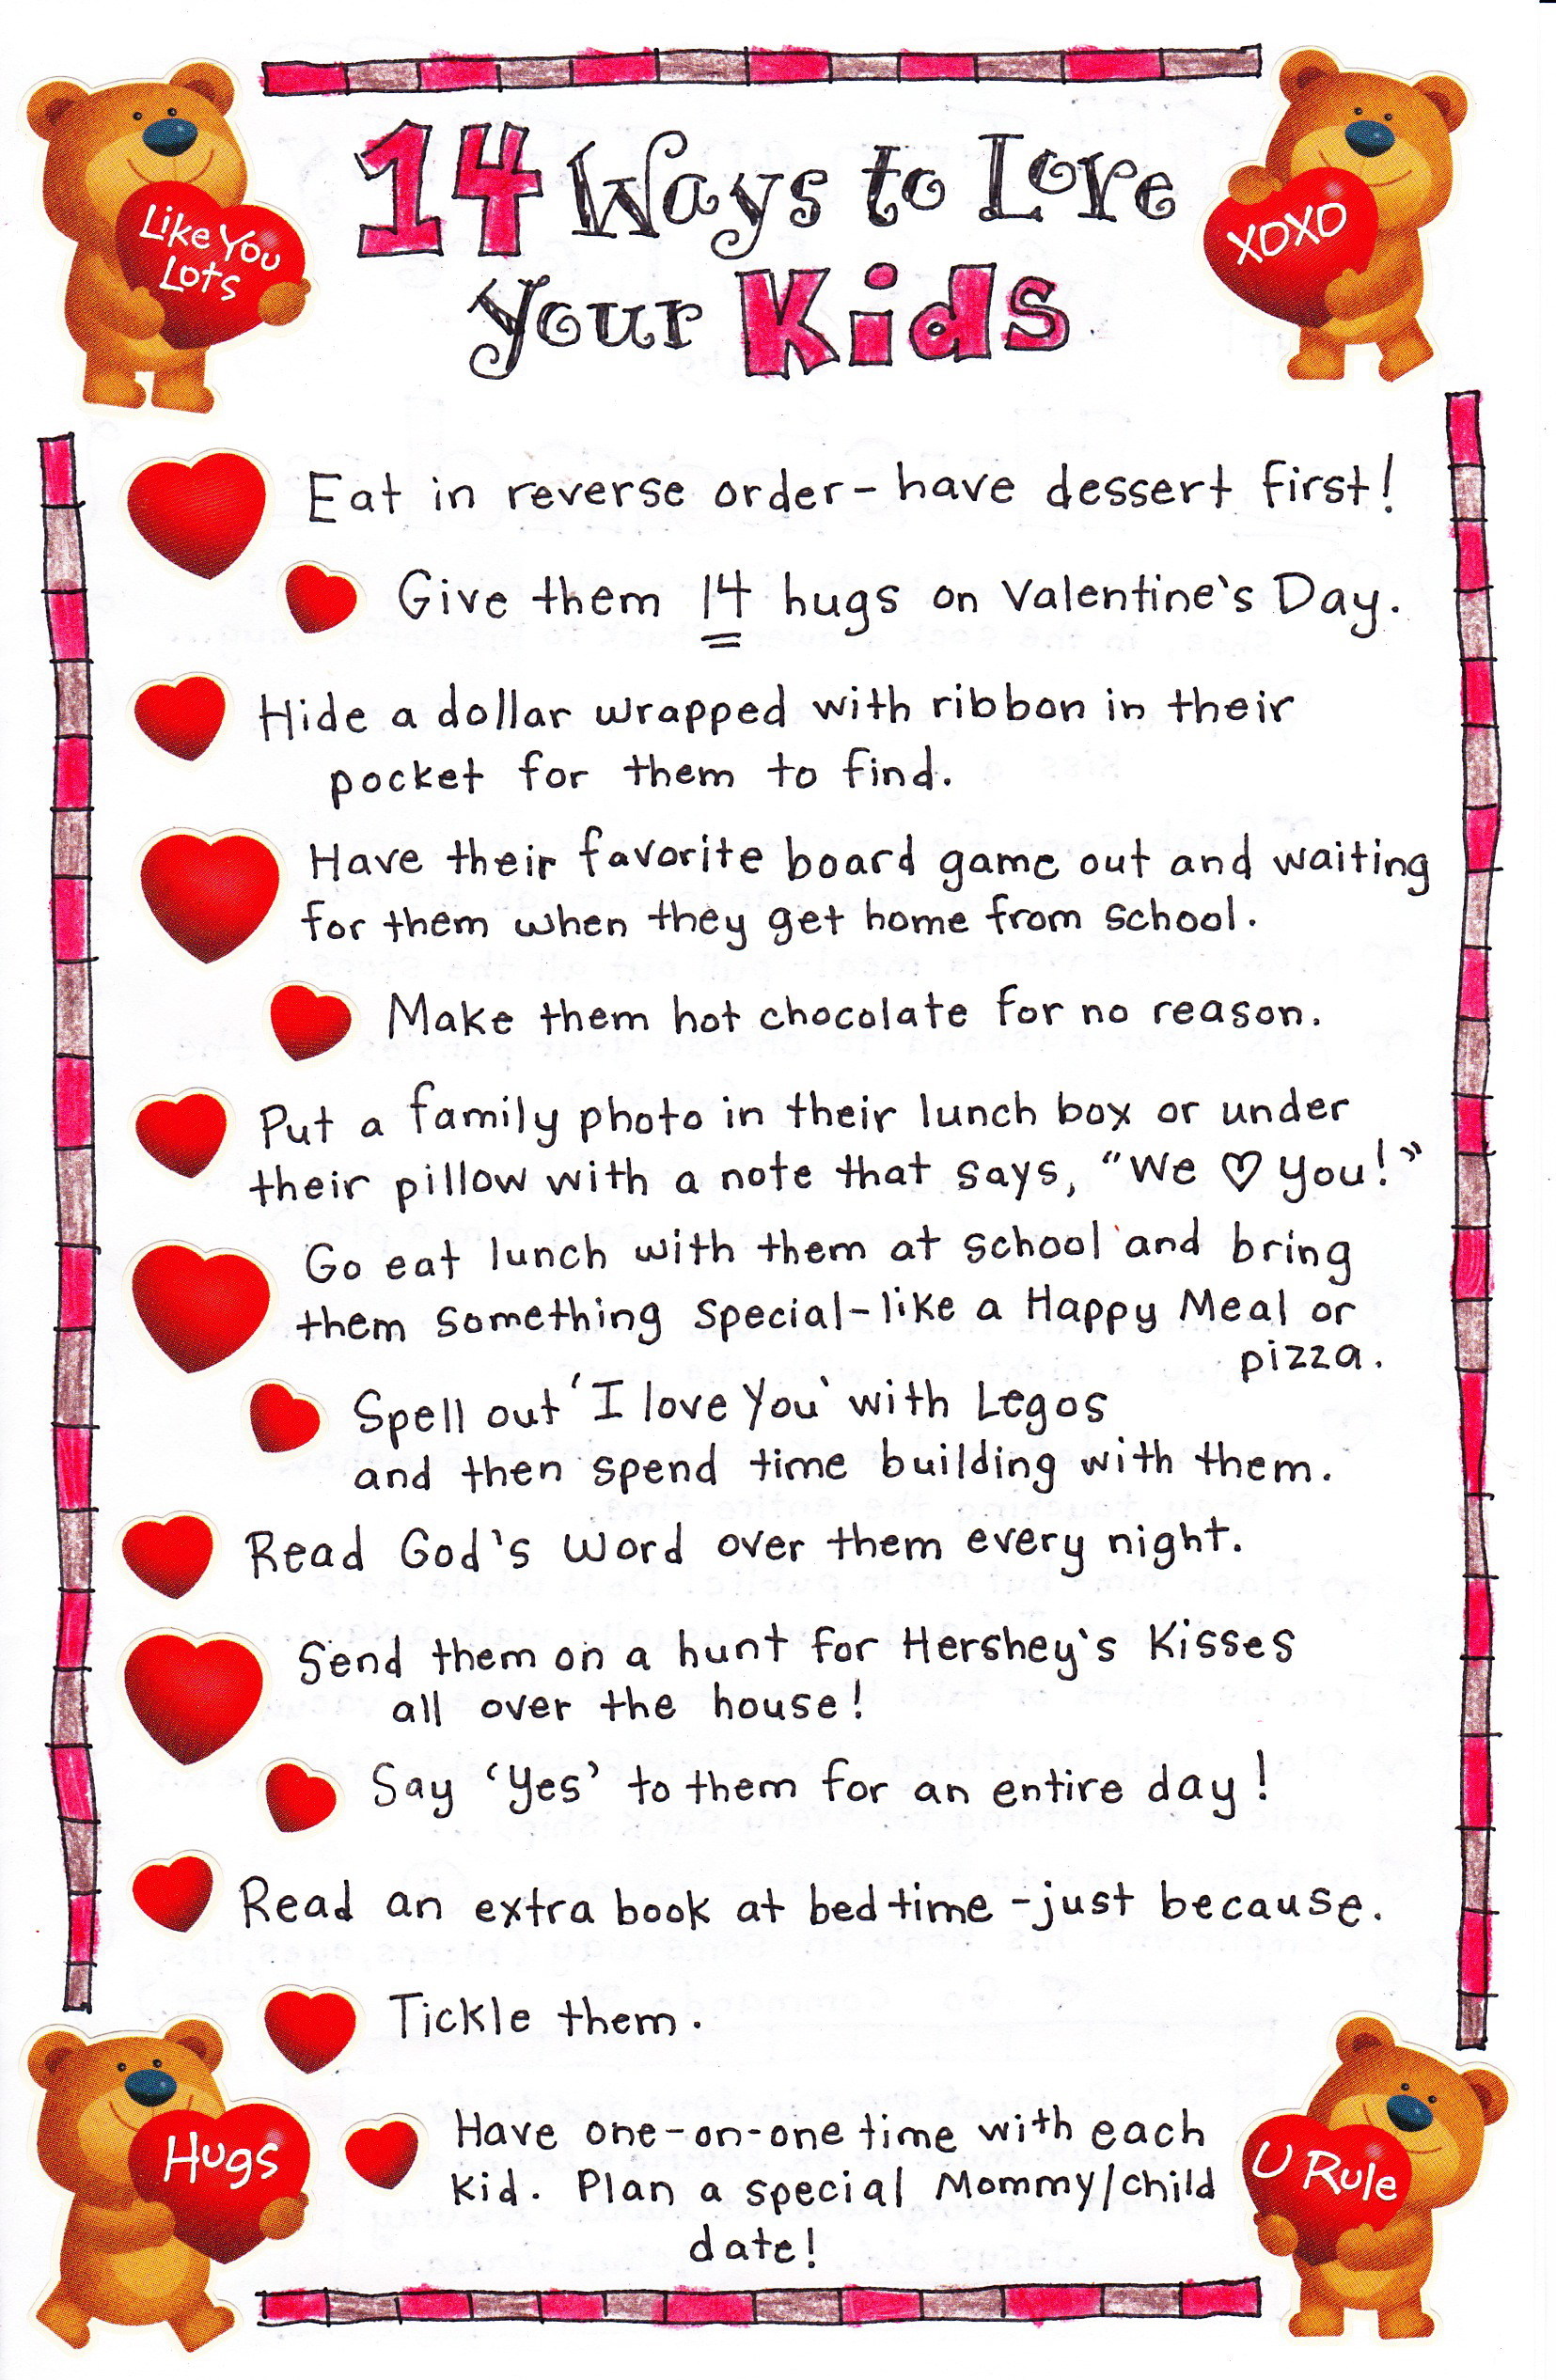 Love Your Children Quotes 14 Ways To Love Your Kids  247 Moms